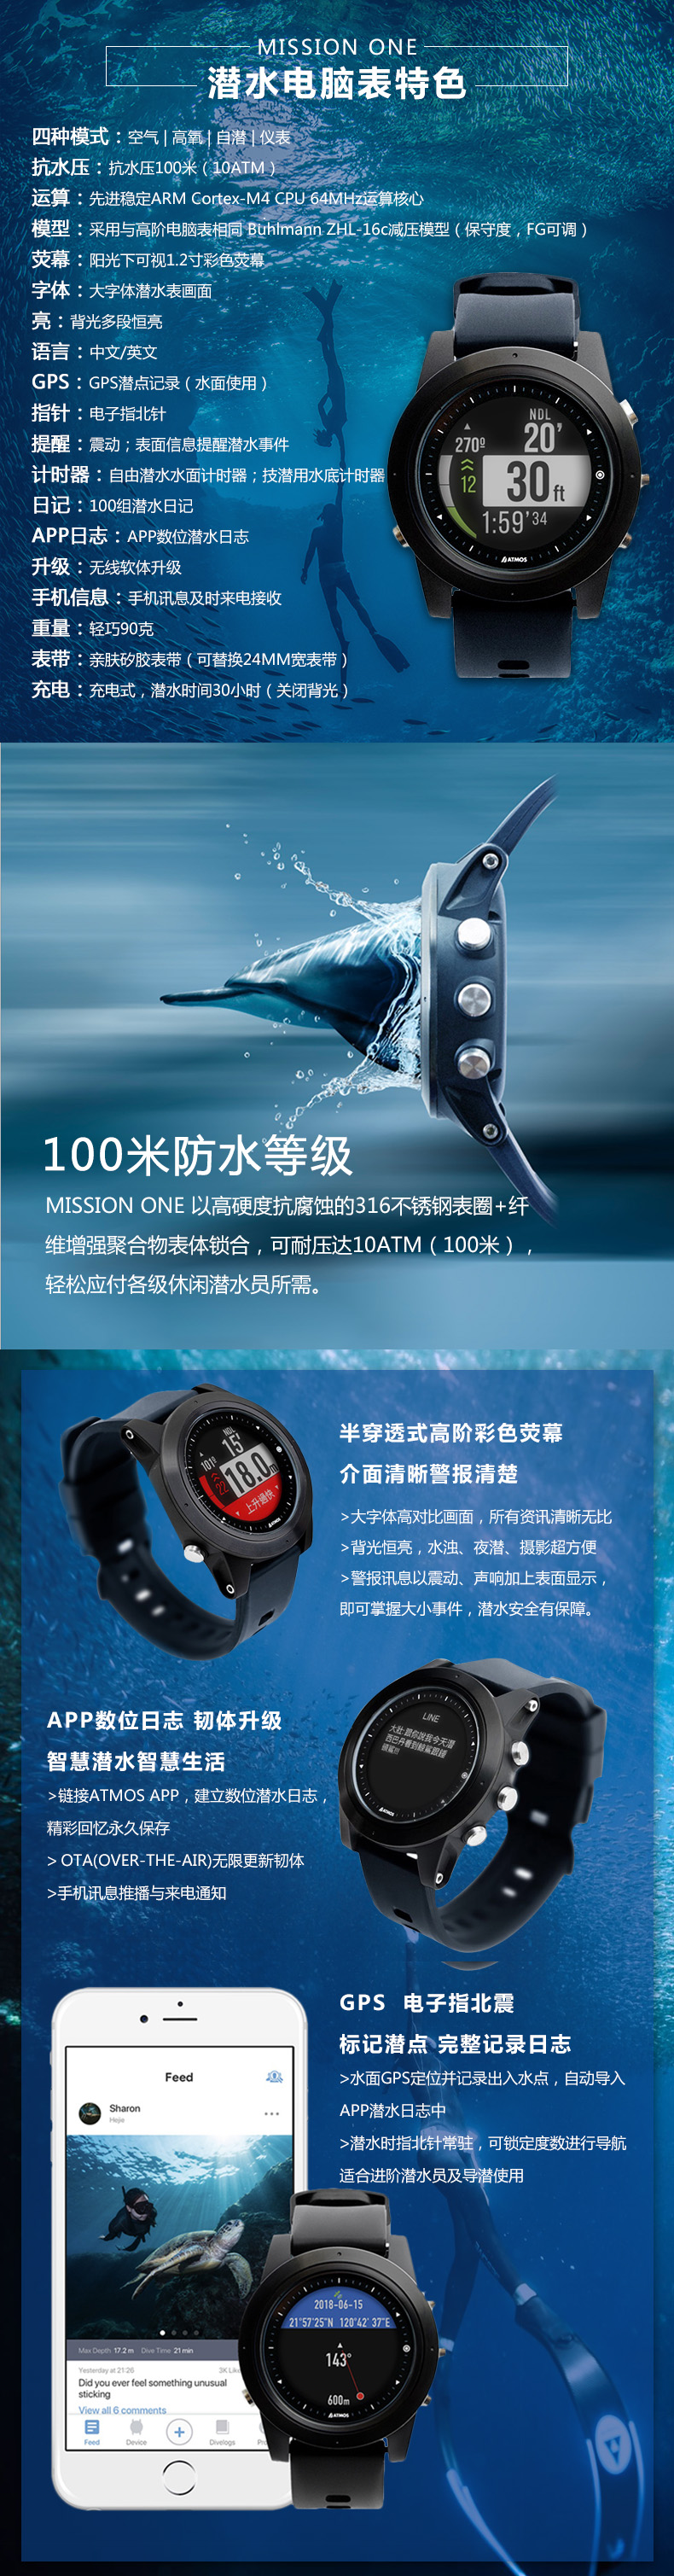 Atmos MISSION ONE潜水电脑表